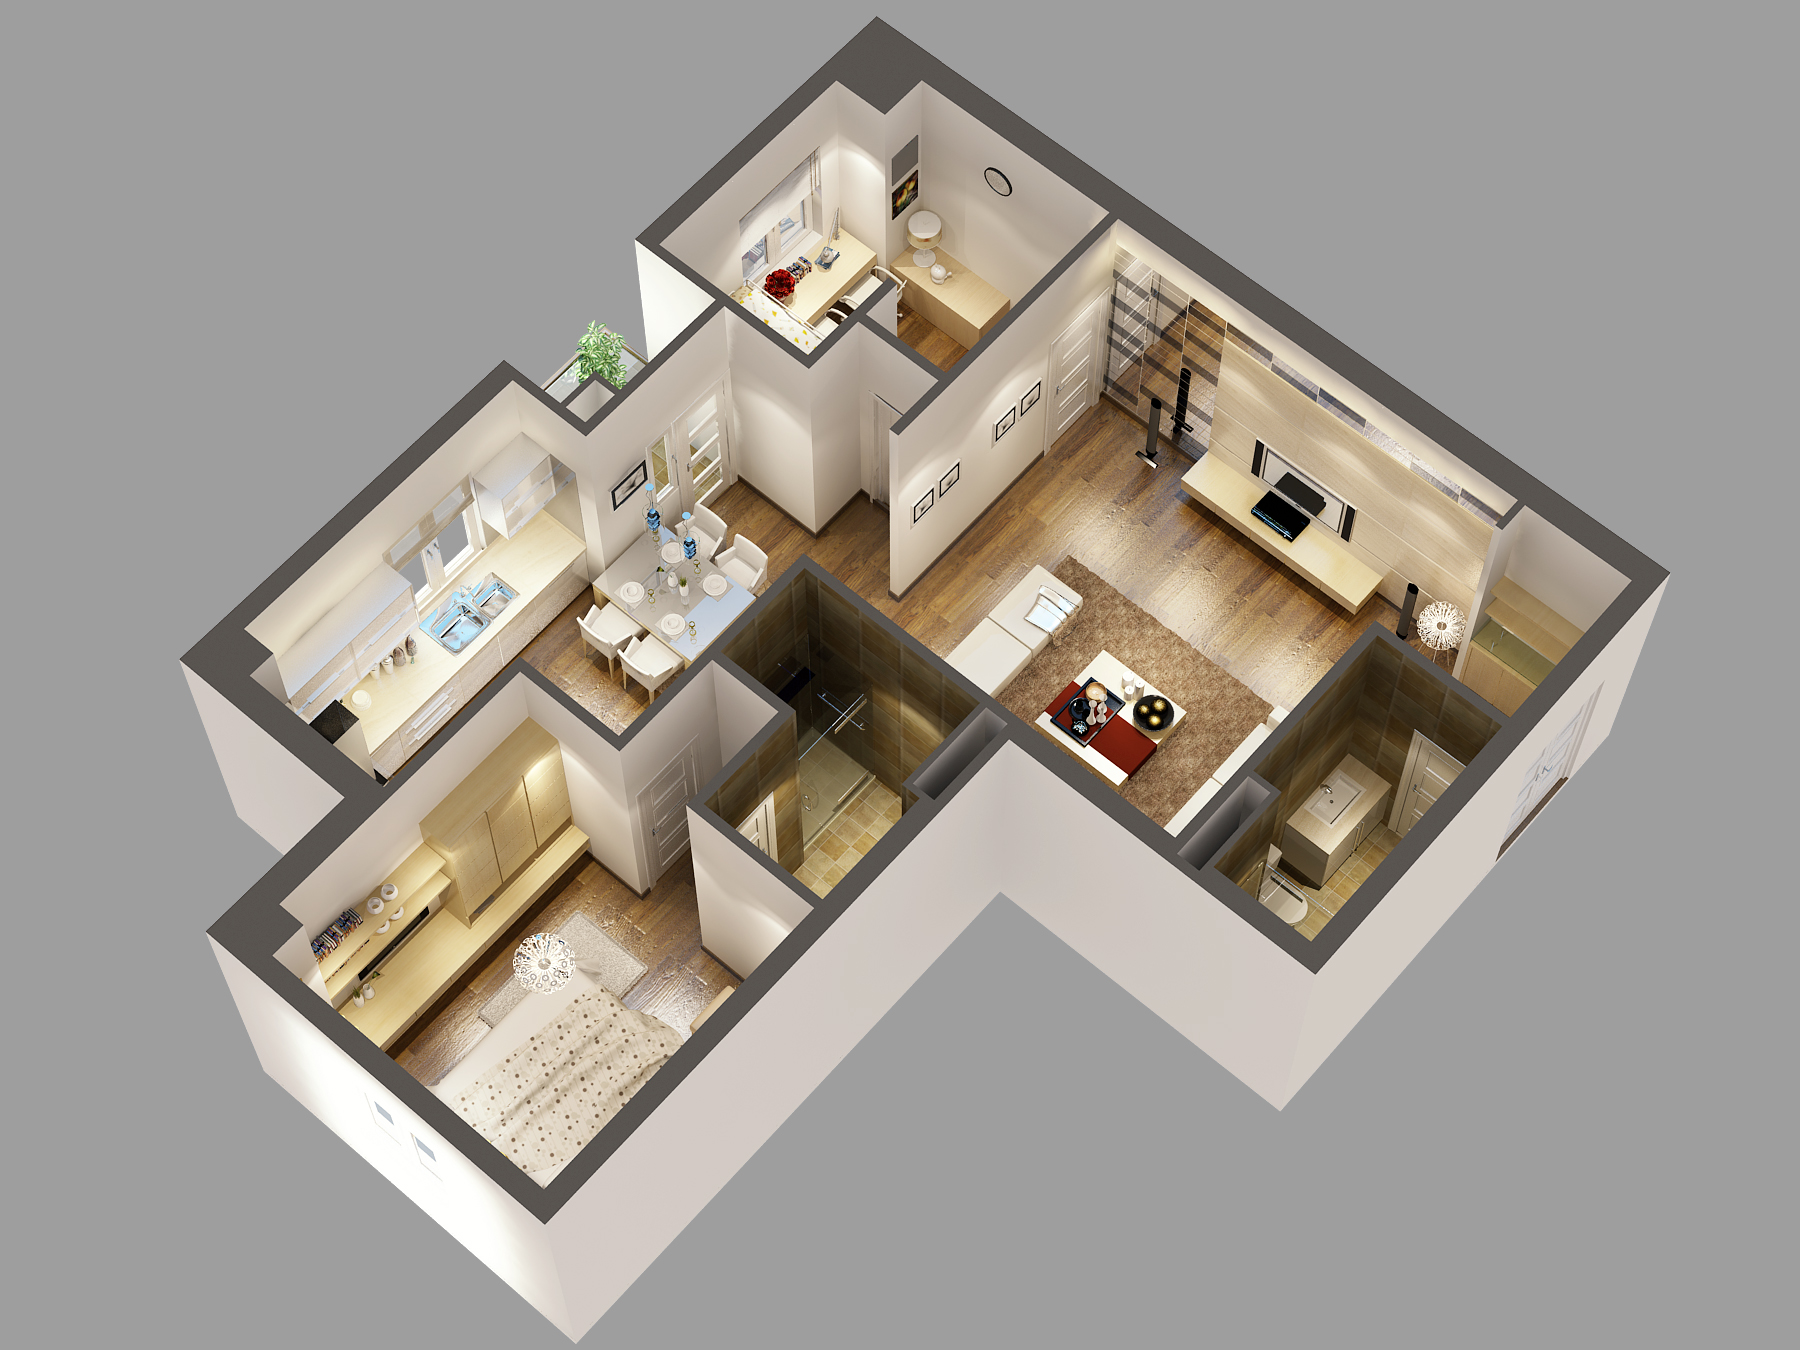 Detailed House Cutaway 3d Model 3d Model Buy Detailed House Cutaway 3d Model 3d Model